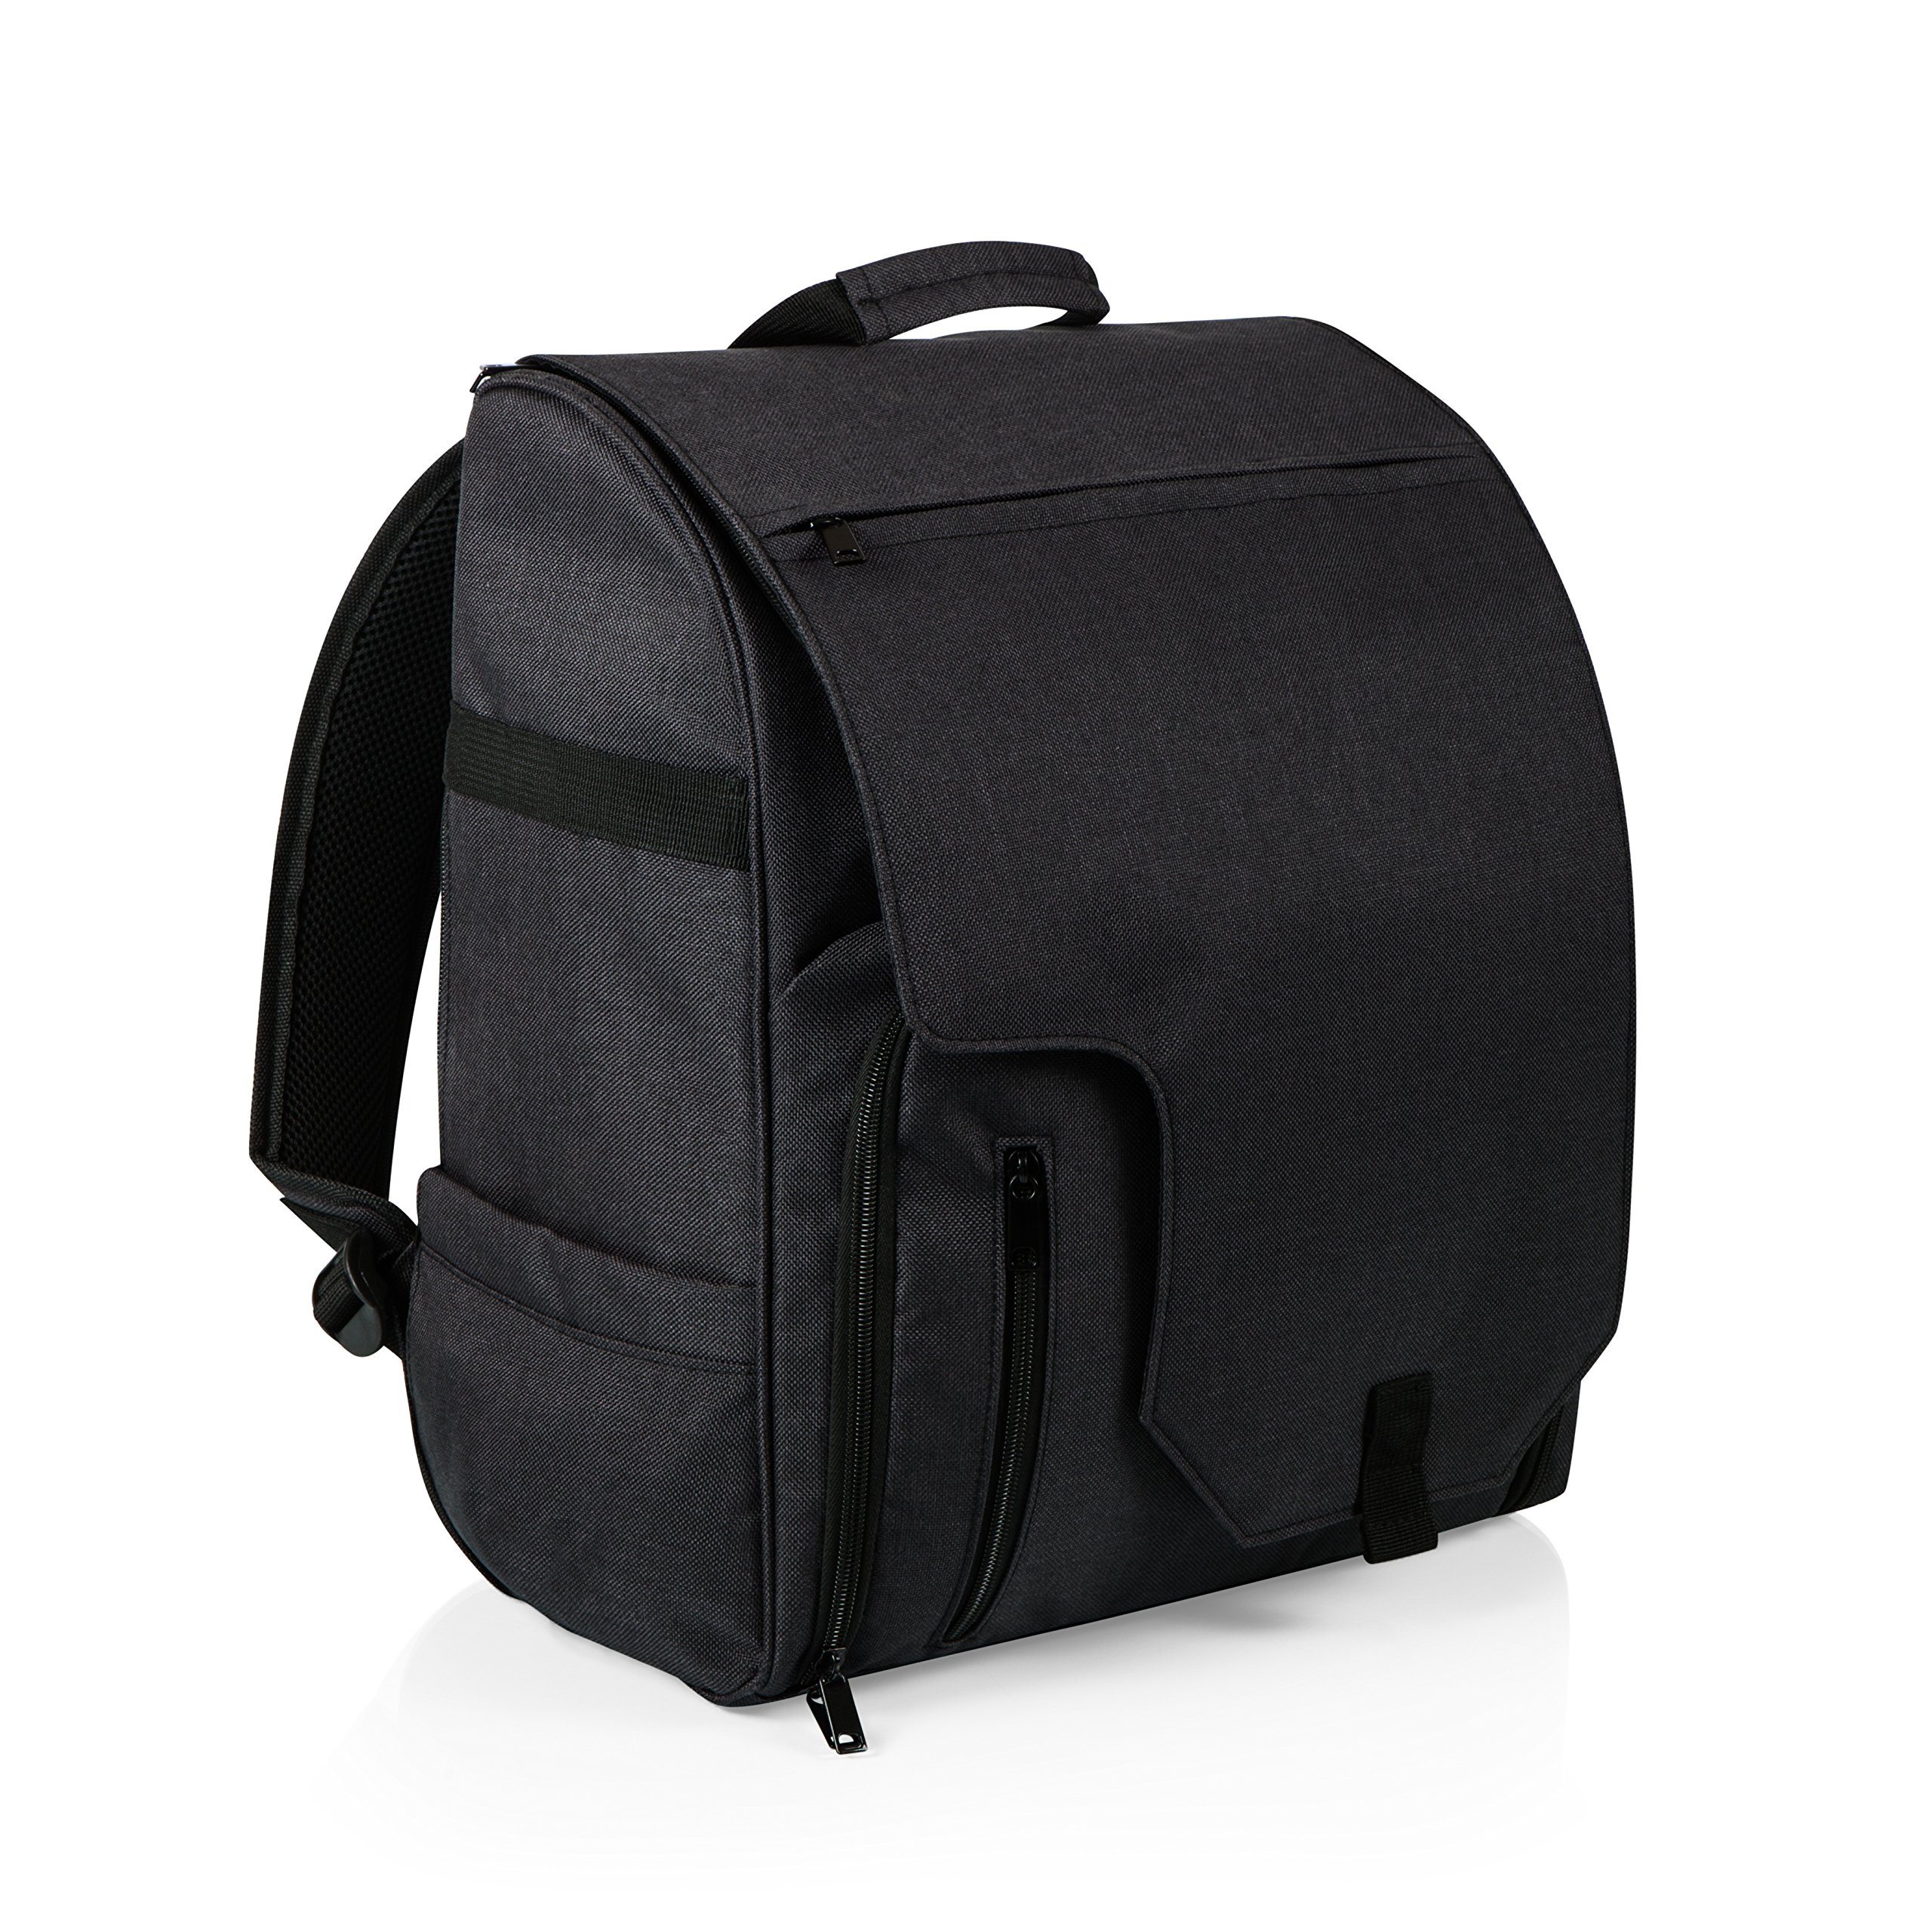 PICNIC TIME ONIVA - a Brand Commuter Insulated Cooler Backpack, Black